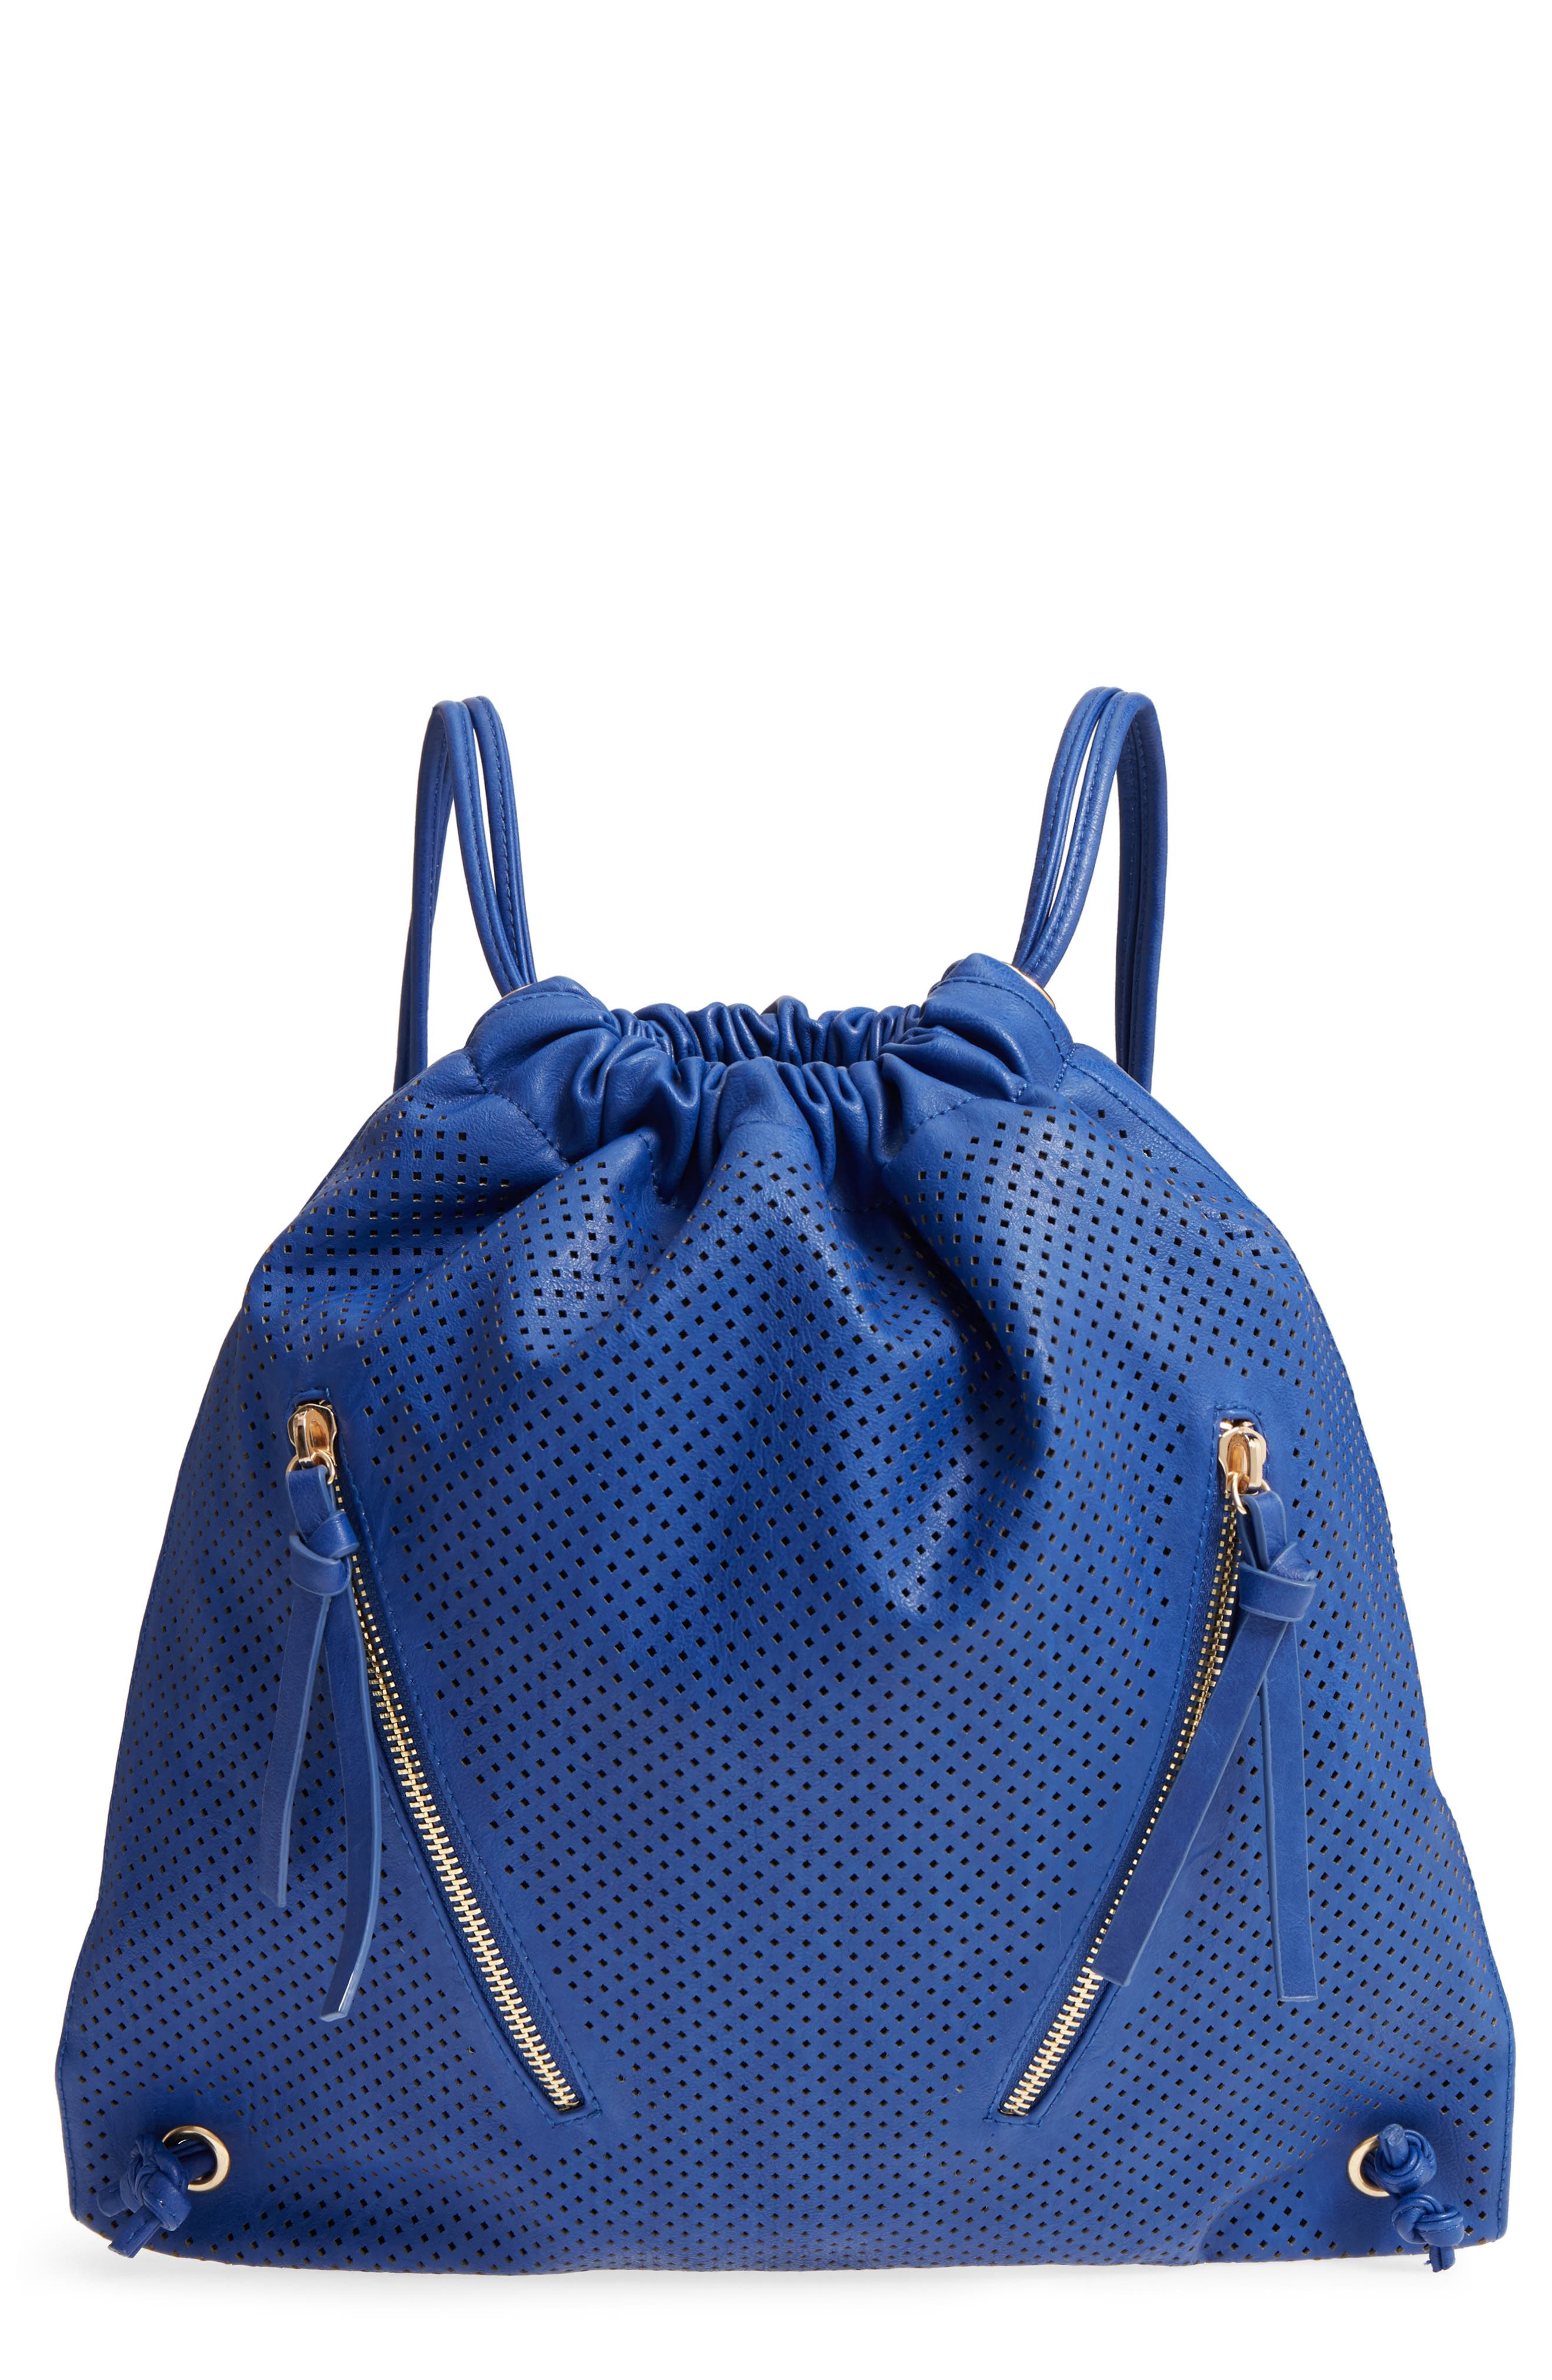 Perforated Double Zip Backpack,                             Main thumbnail 1, color,                             400